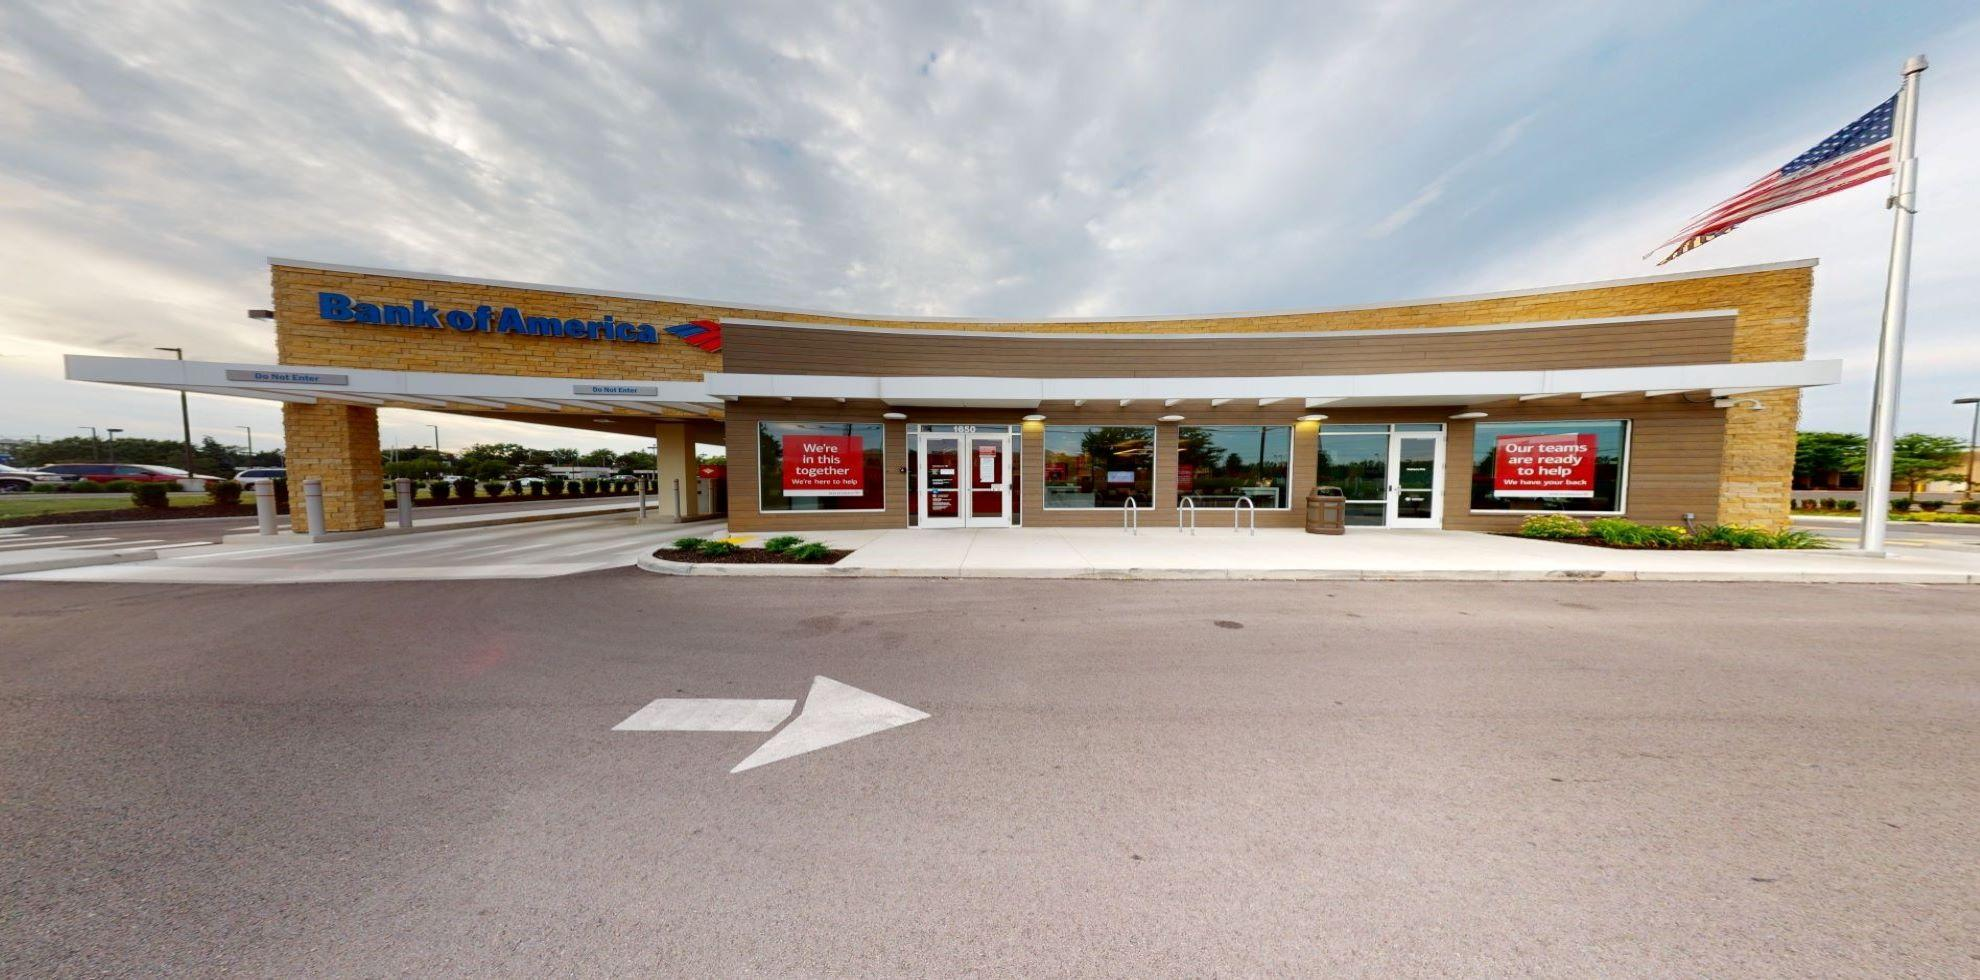 Bank of America financial center with drive-thru ATM | 1650 Morse Rd, Columbus, OH 43229